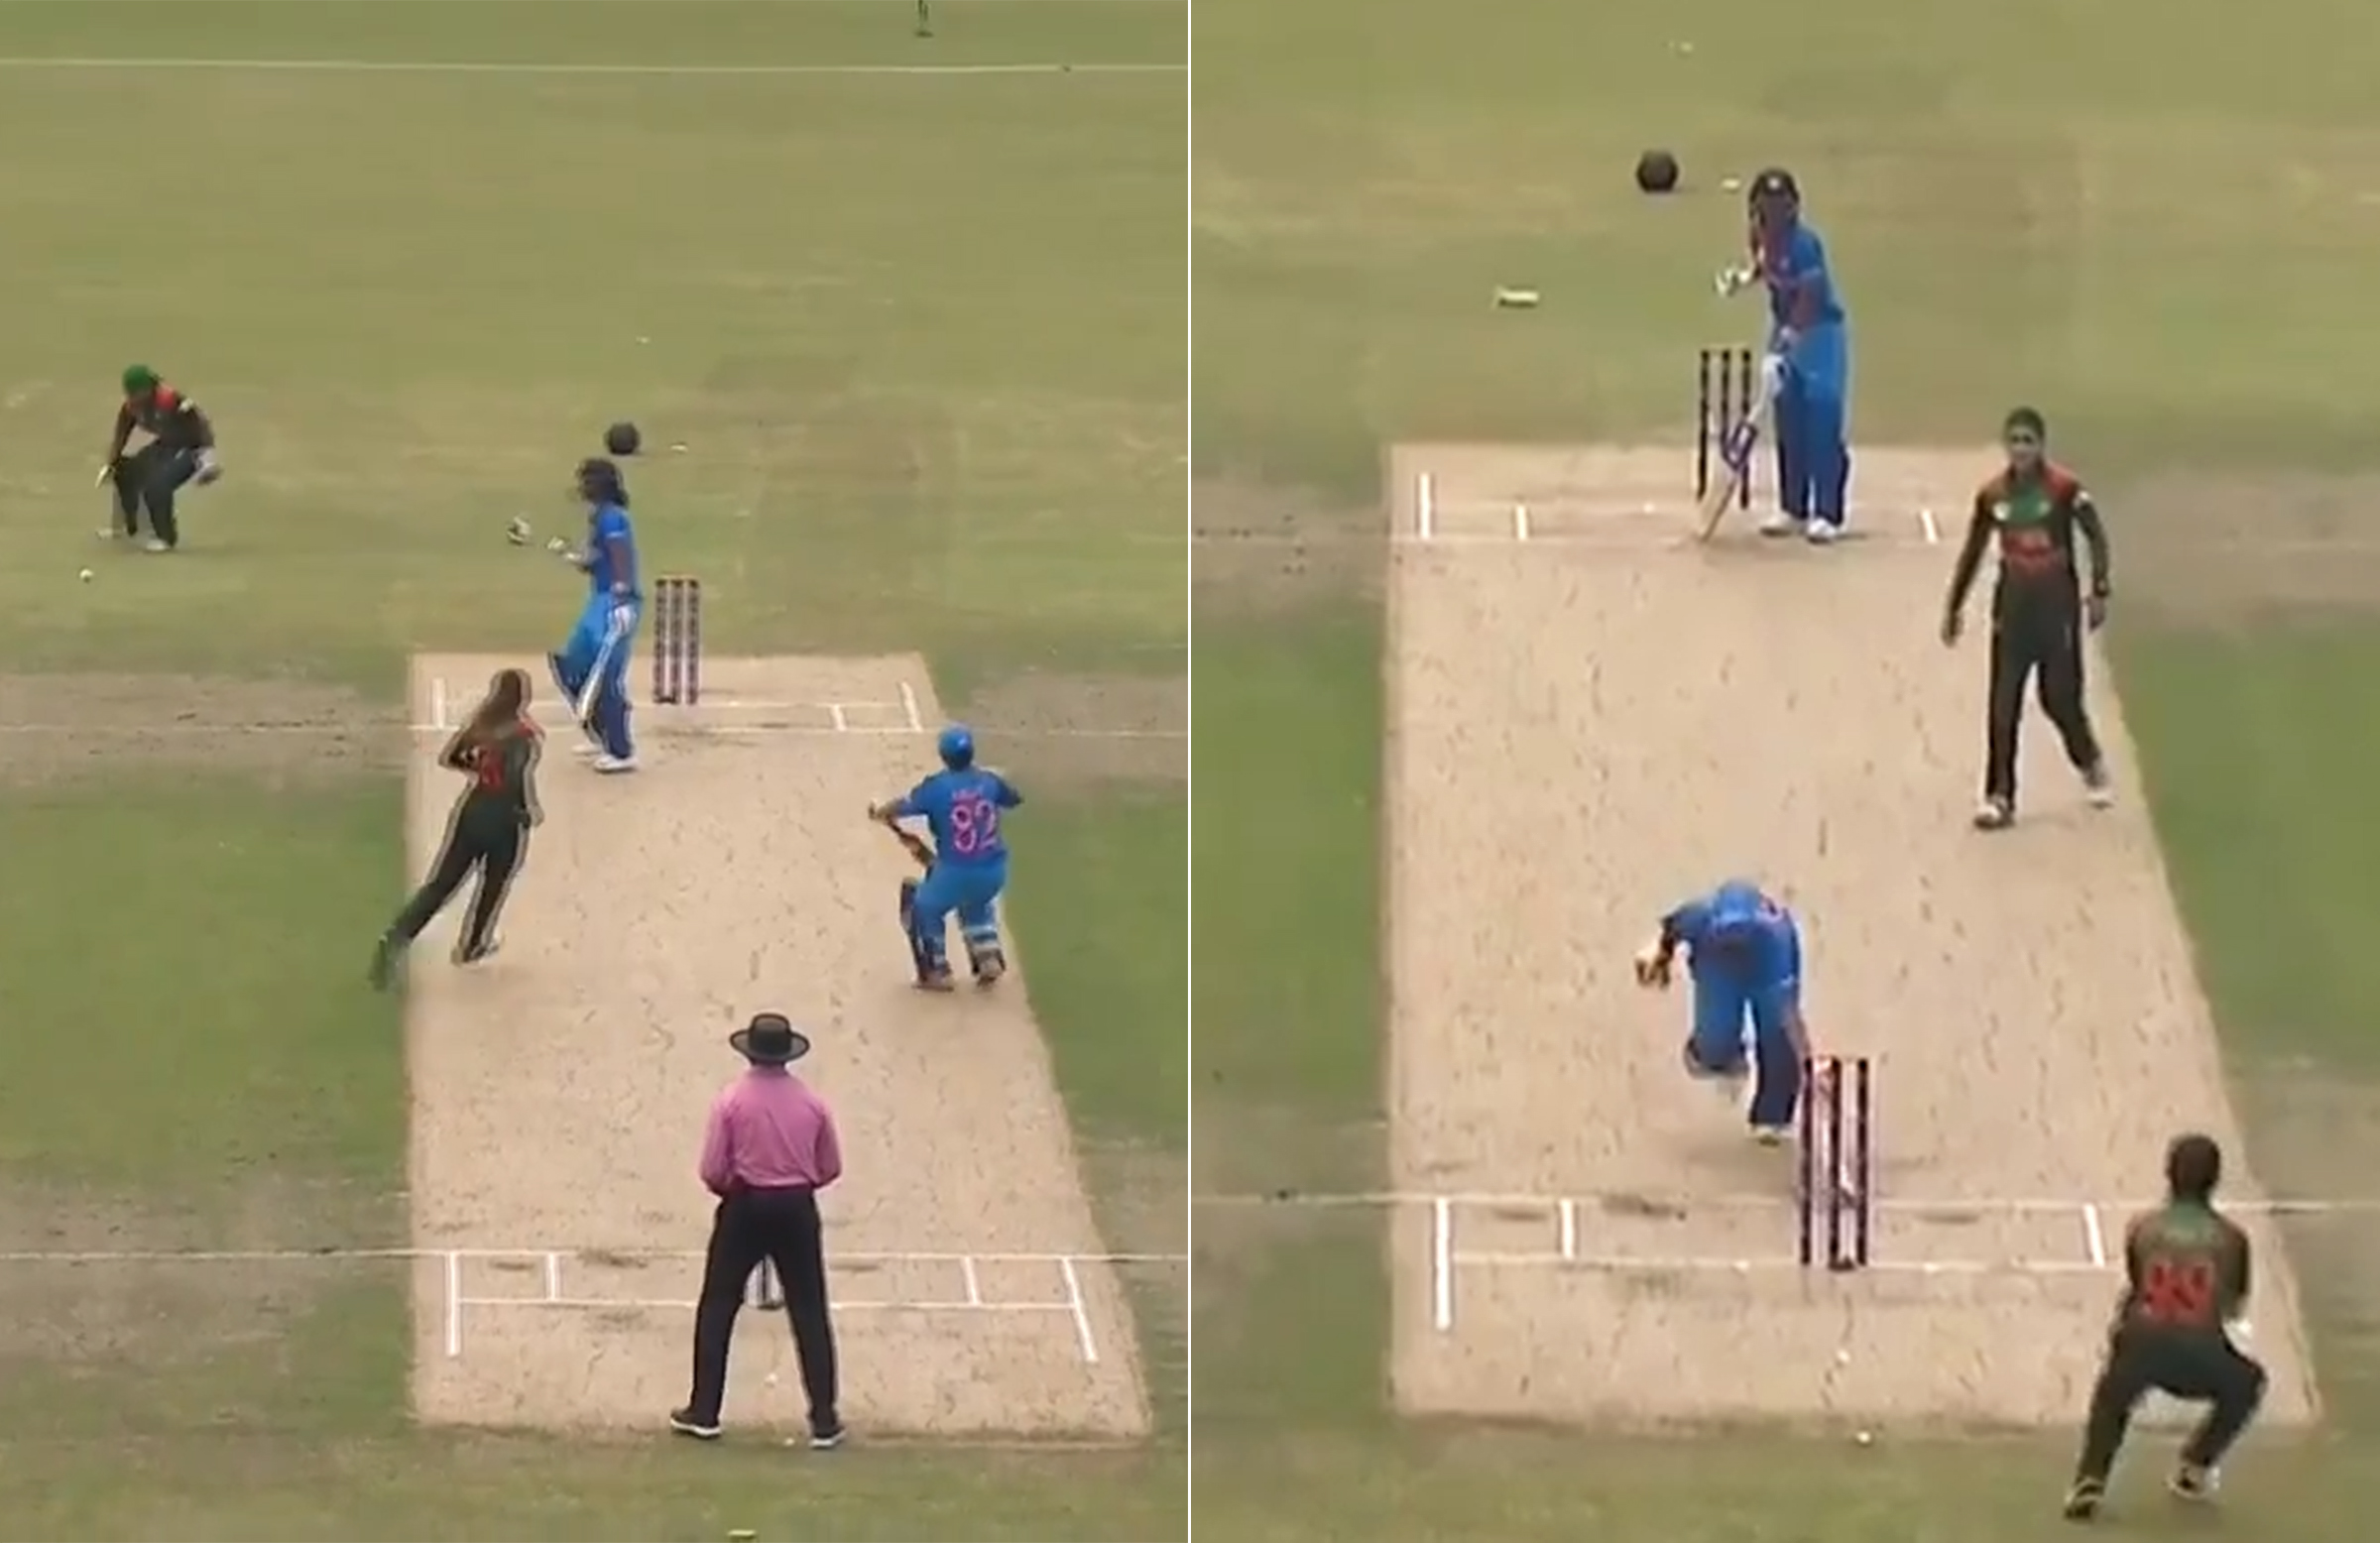 Patil ran from the right side of the pitch (left) into the centre